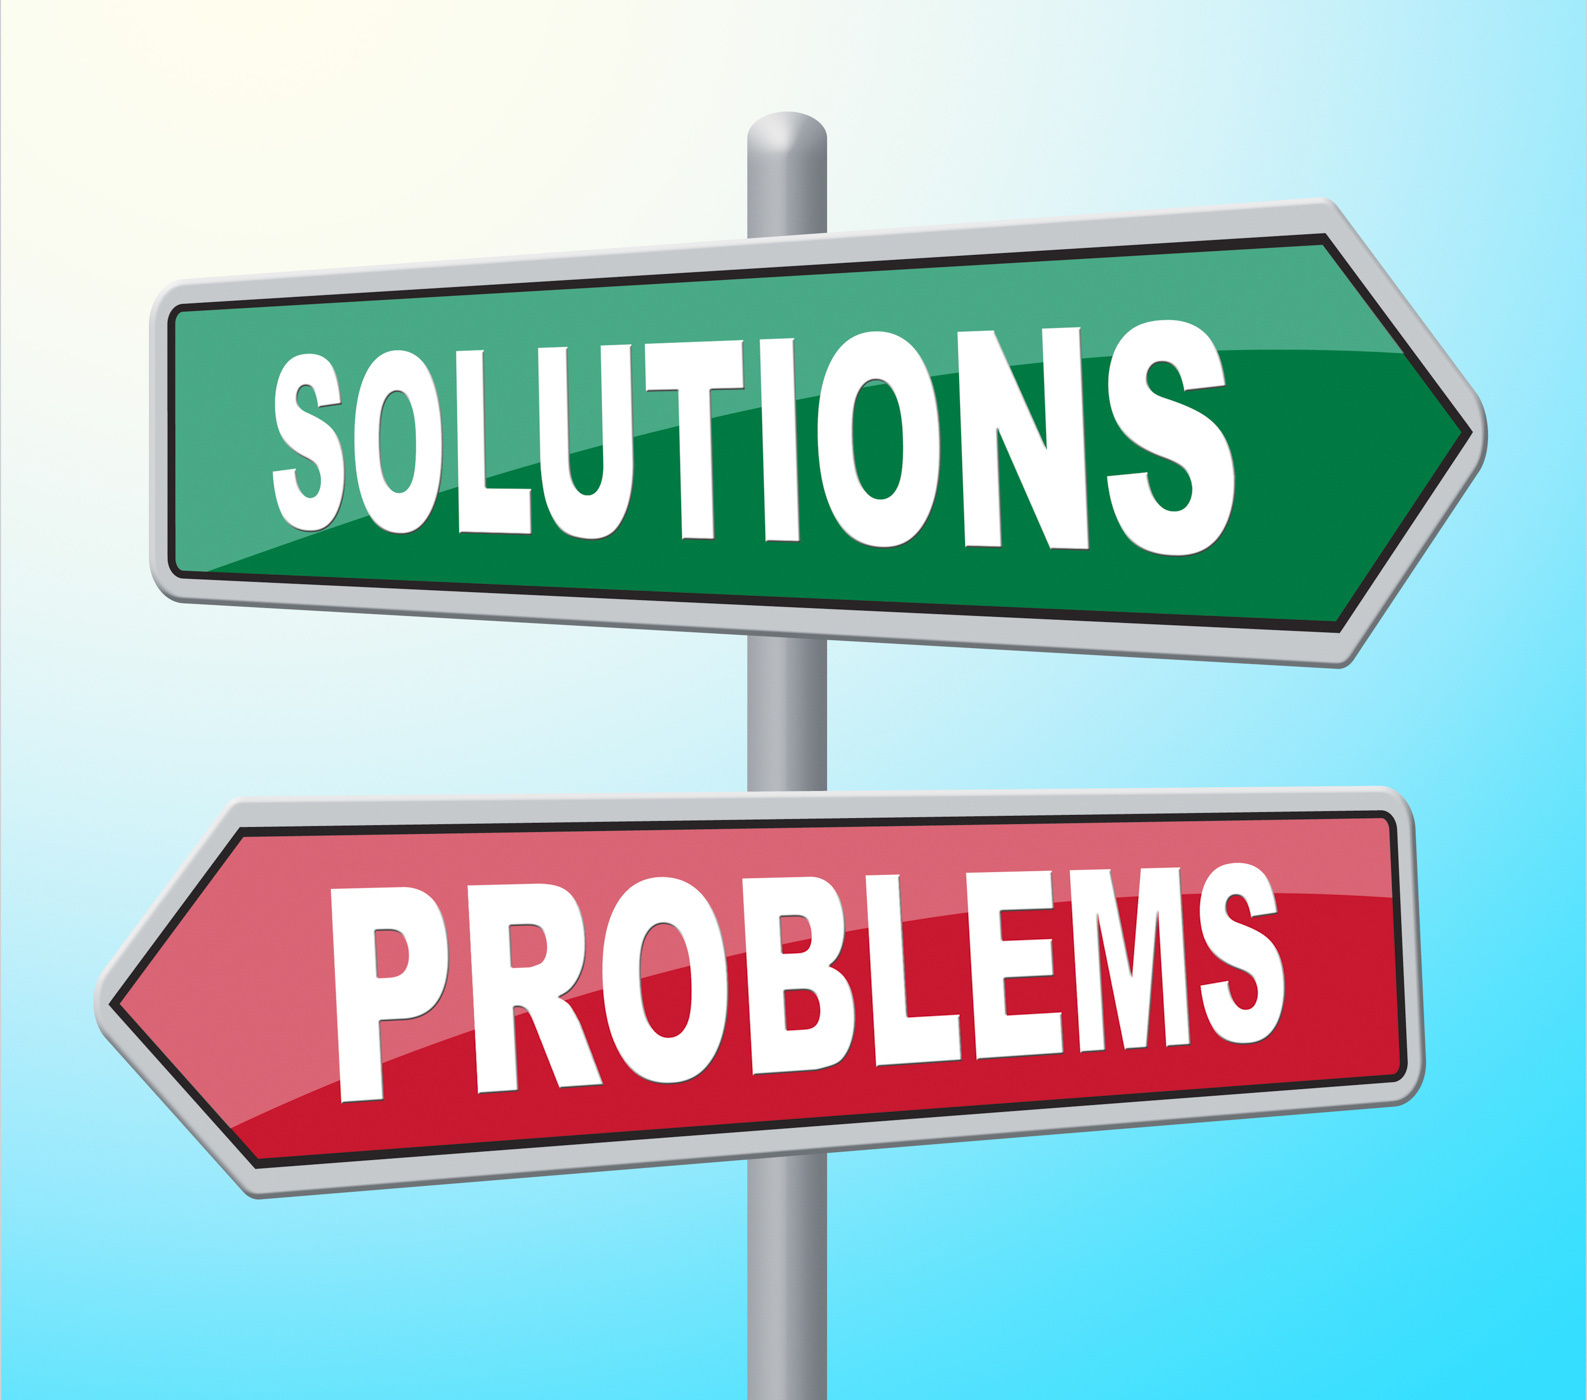 Solutions problems means difficult situation and achievement photo